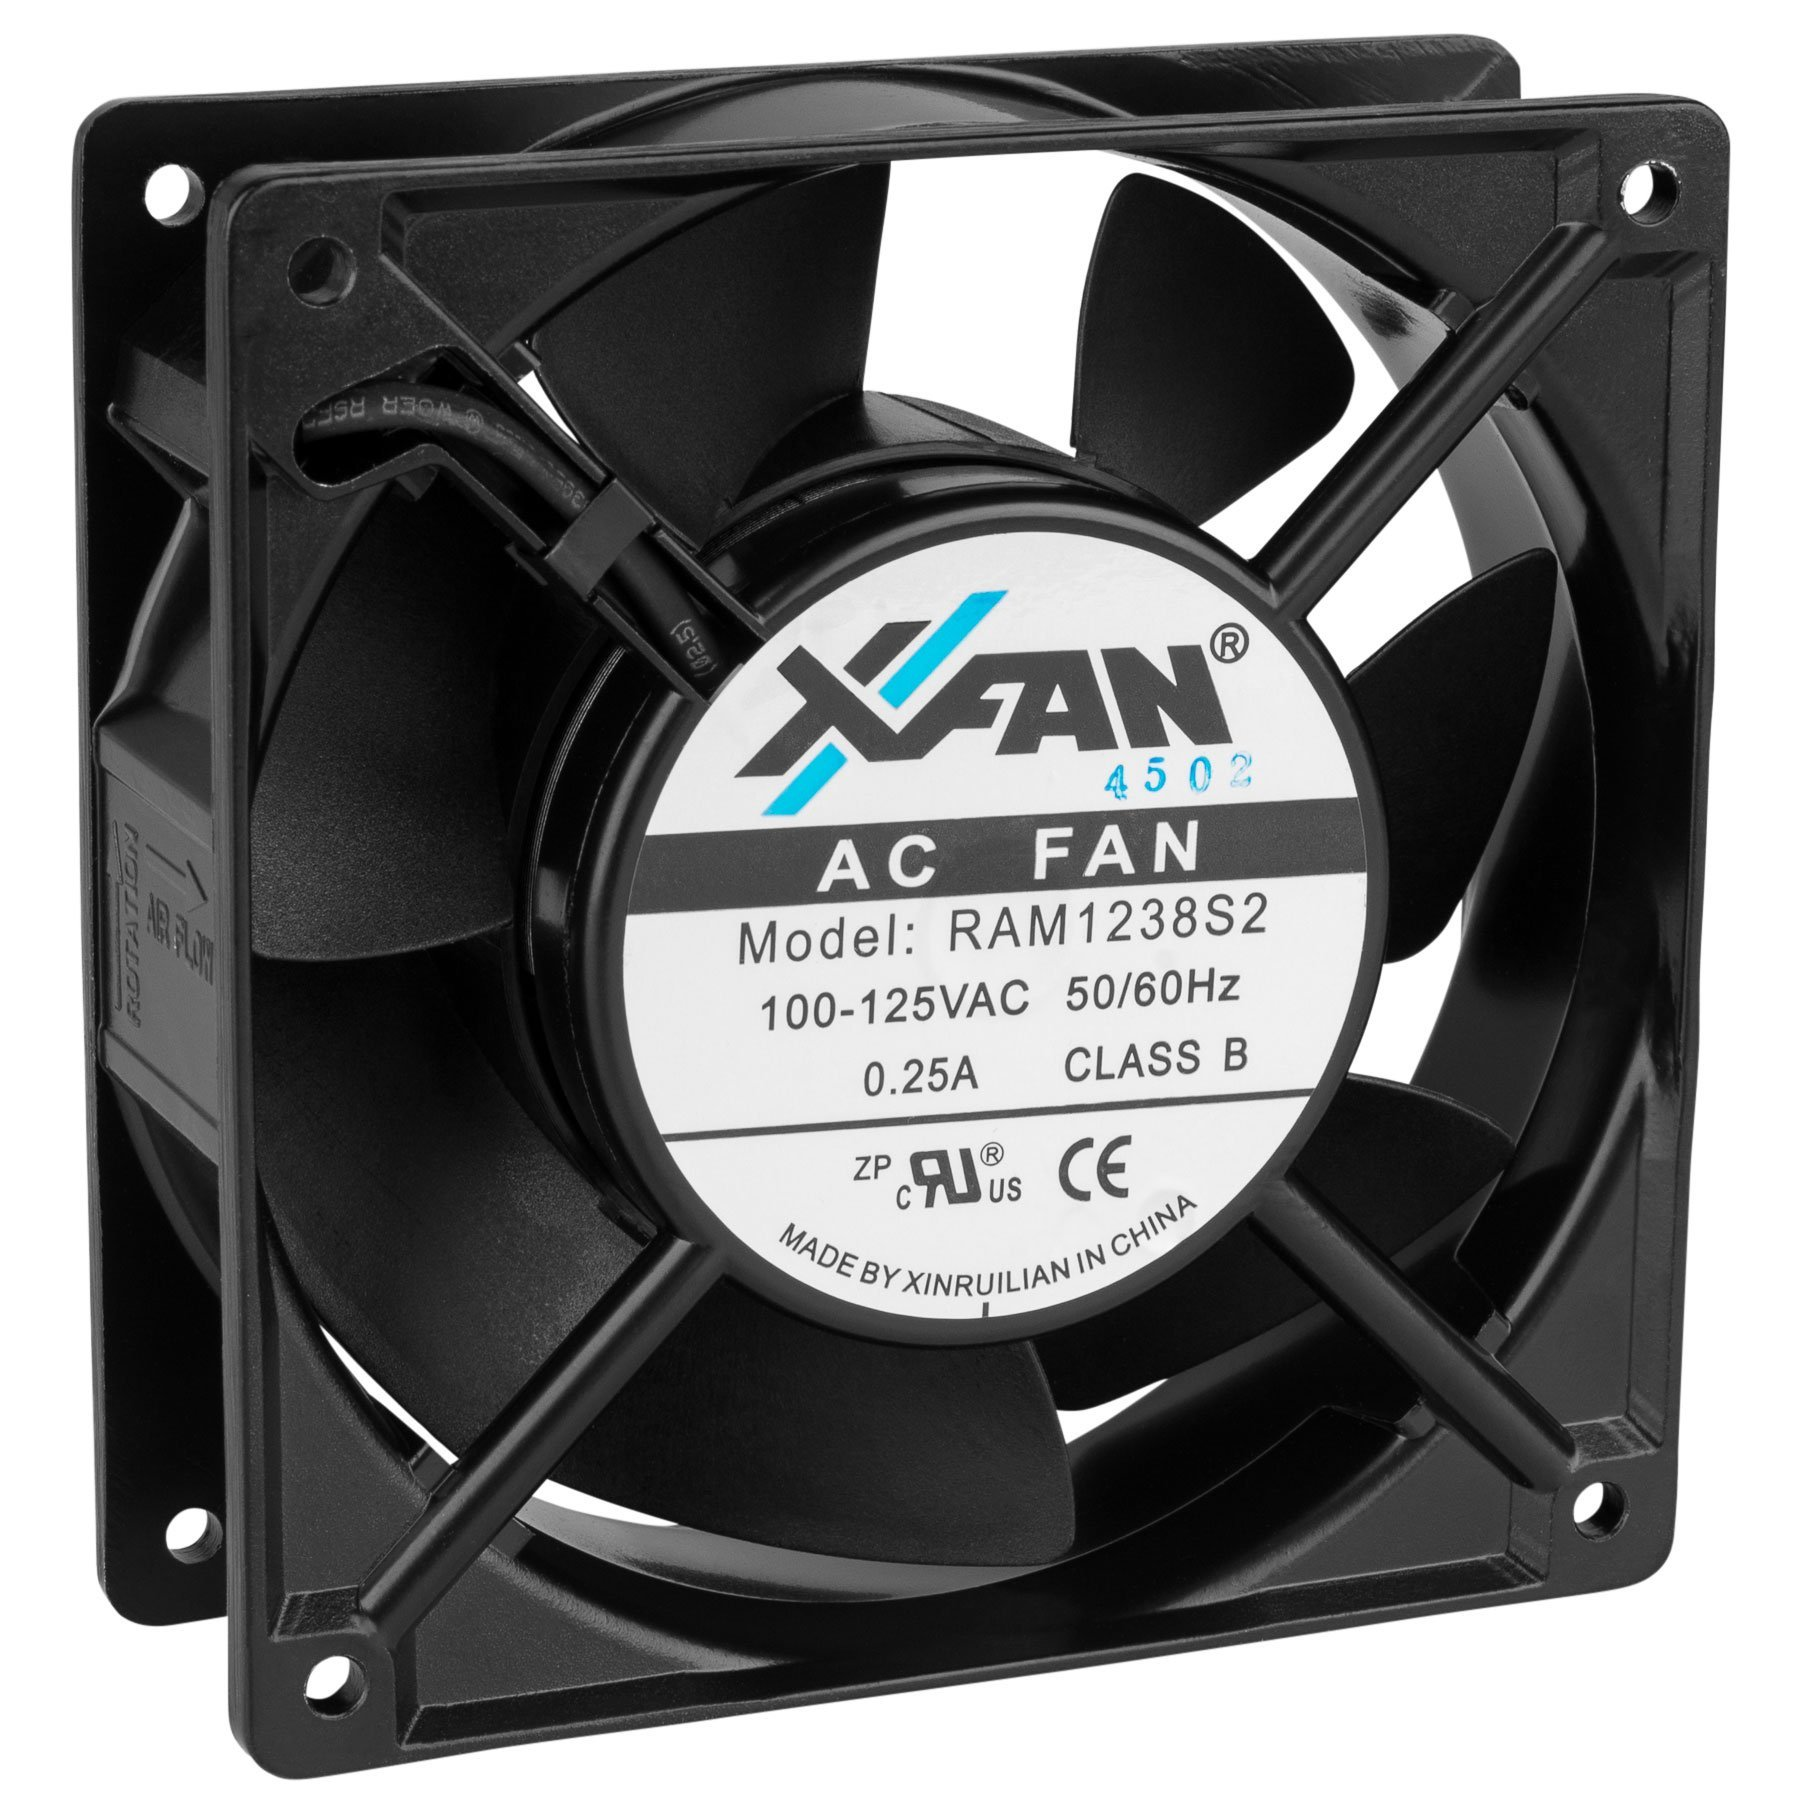 Parts Express Muffin Cooling Fan 100-125 VAC 77/86 CFM 4-5/8'' x 1-1/2'' RAM1238S2